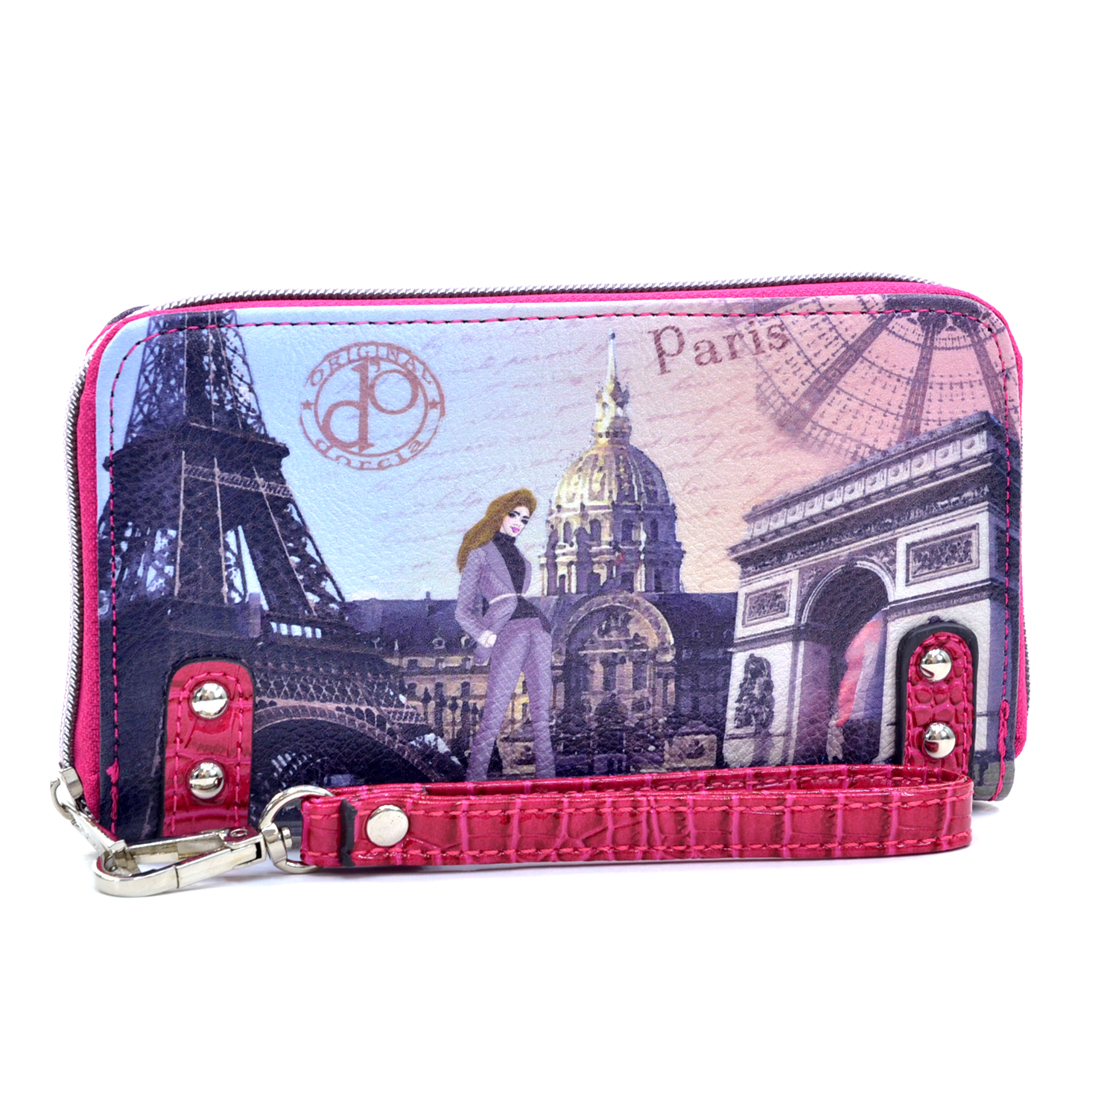 Studded Zip Around International Print  Wallet Paris- Wrist Strap